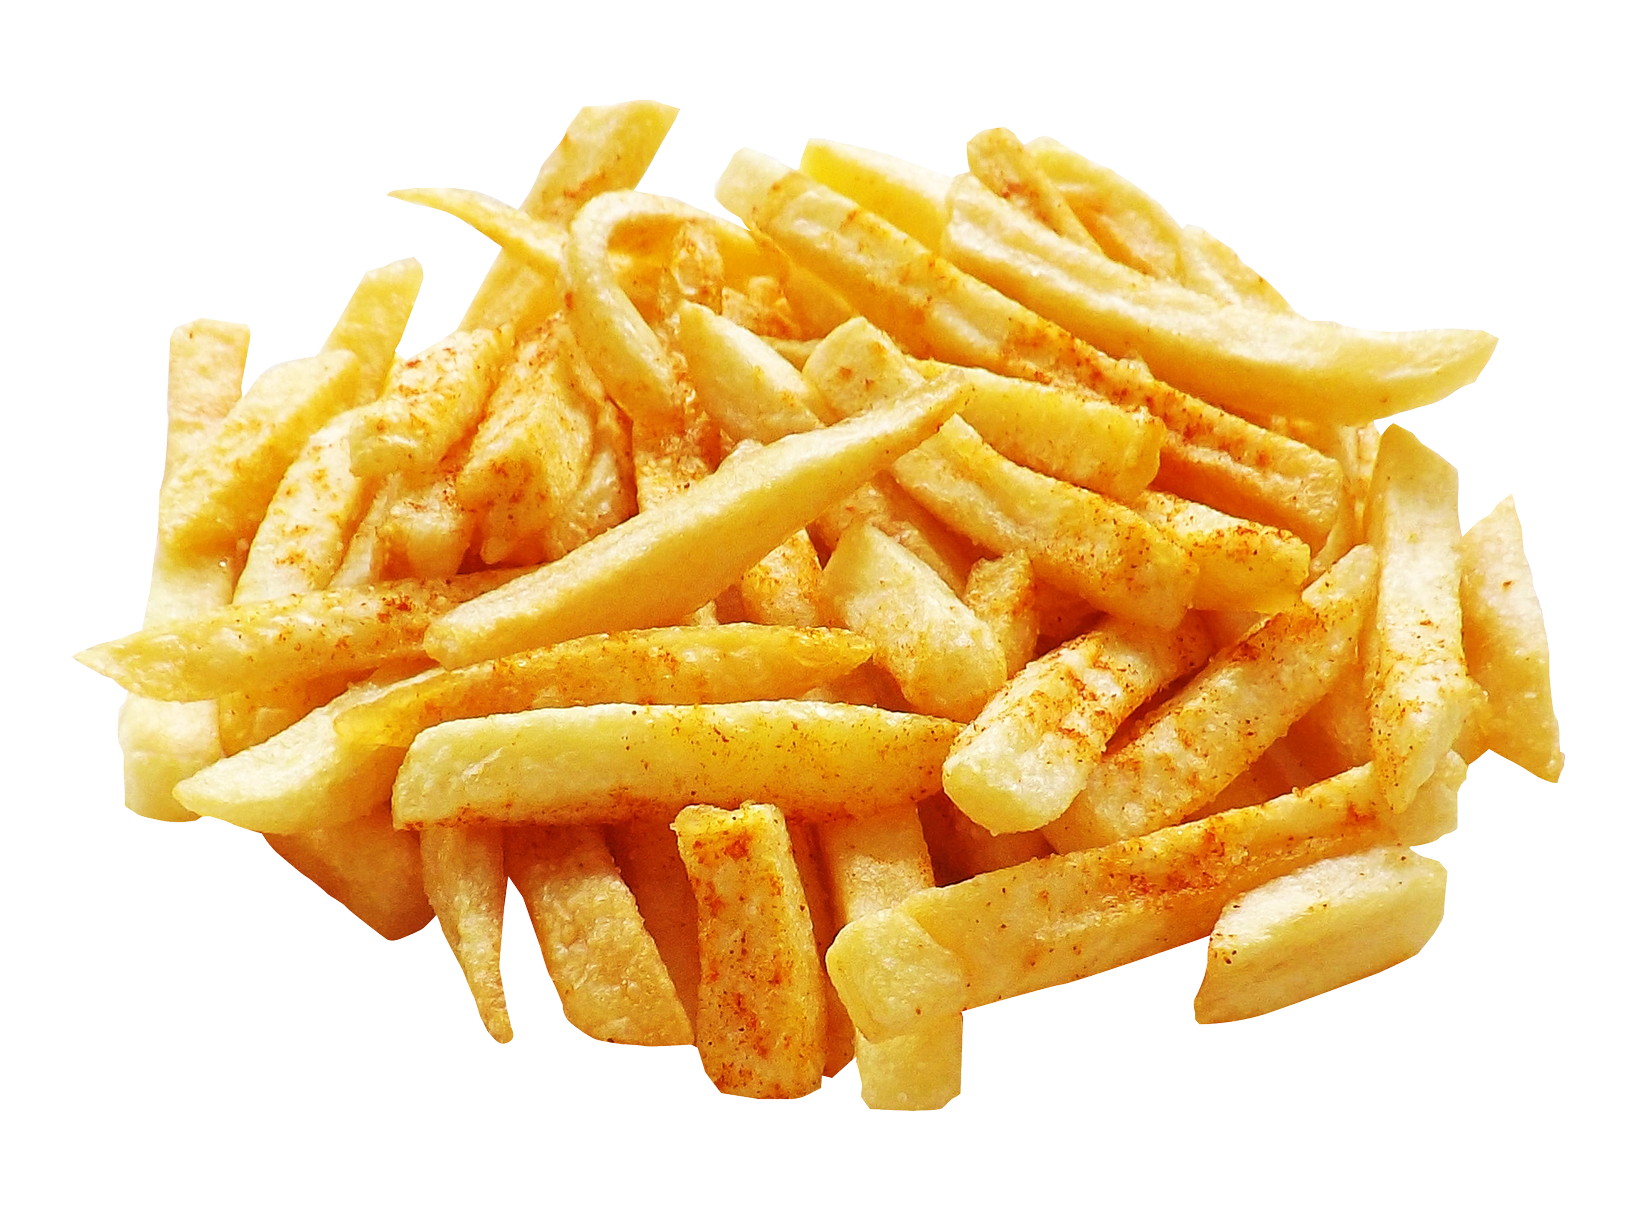 Chips transparent junk food. French fries png image